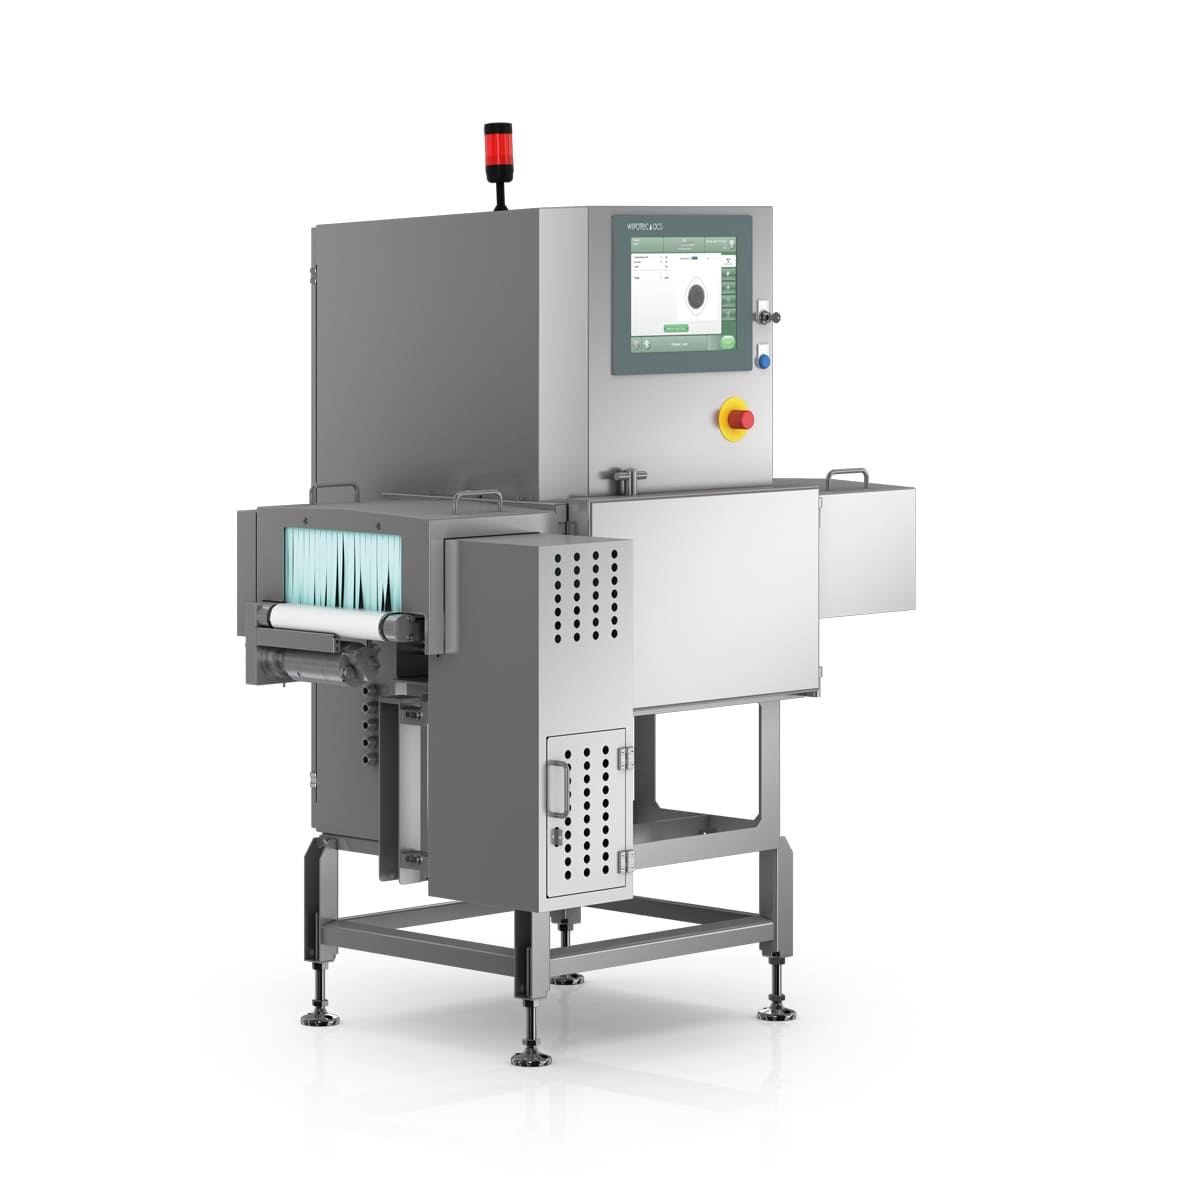 x-ray-inspection-system-sc-e-3000-left-view